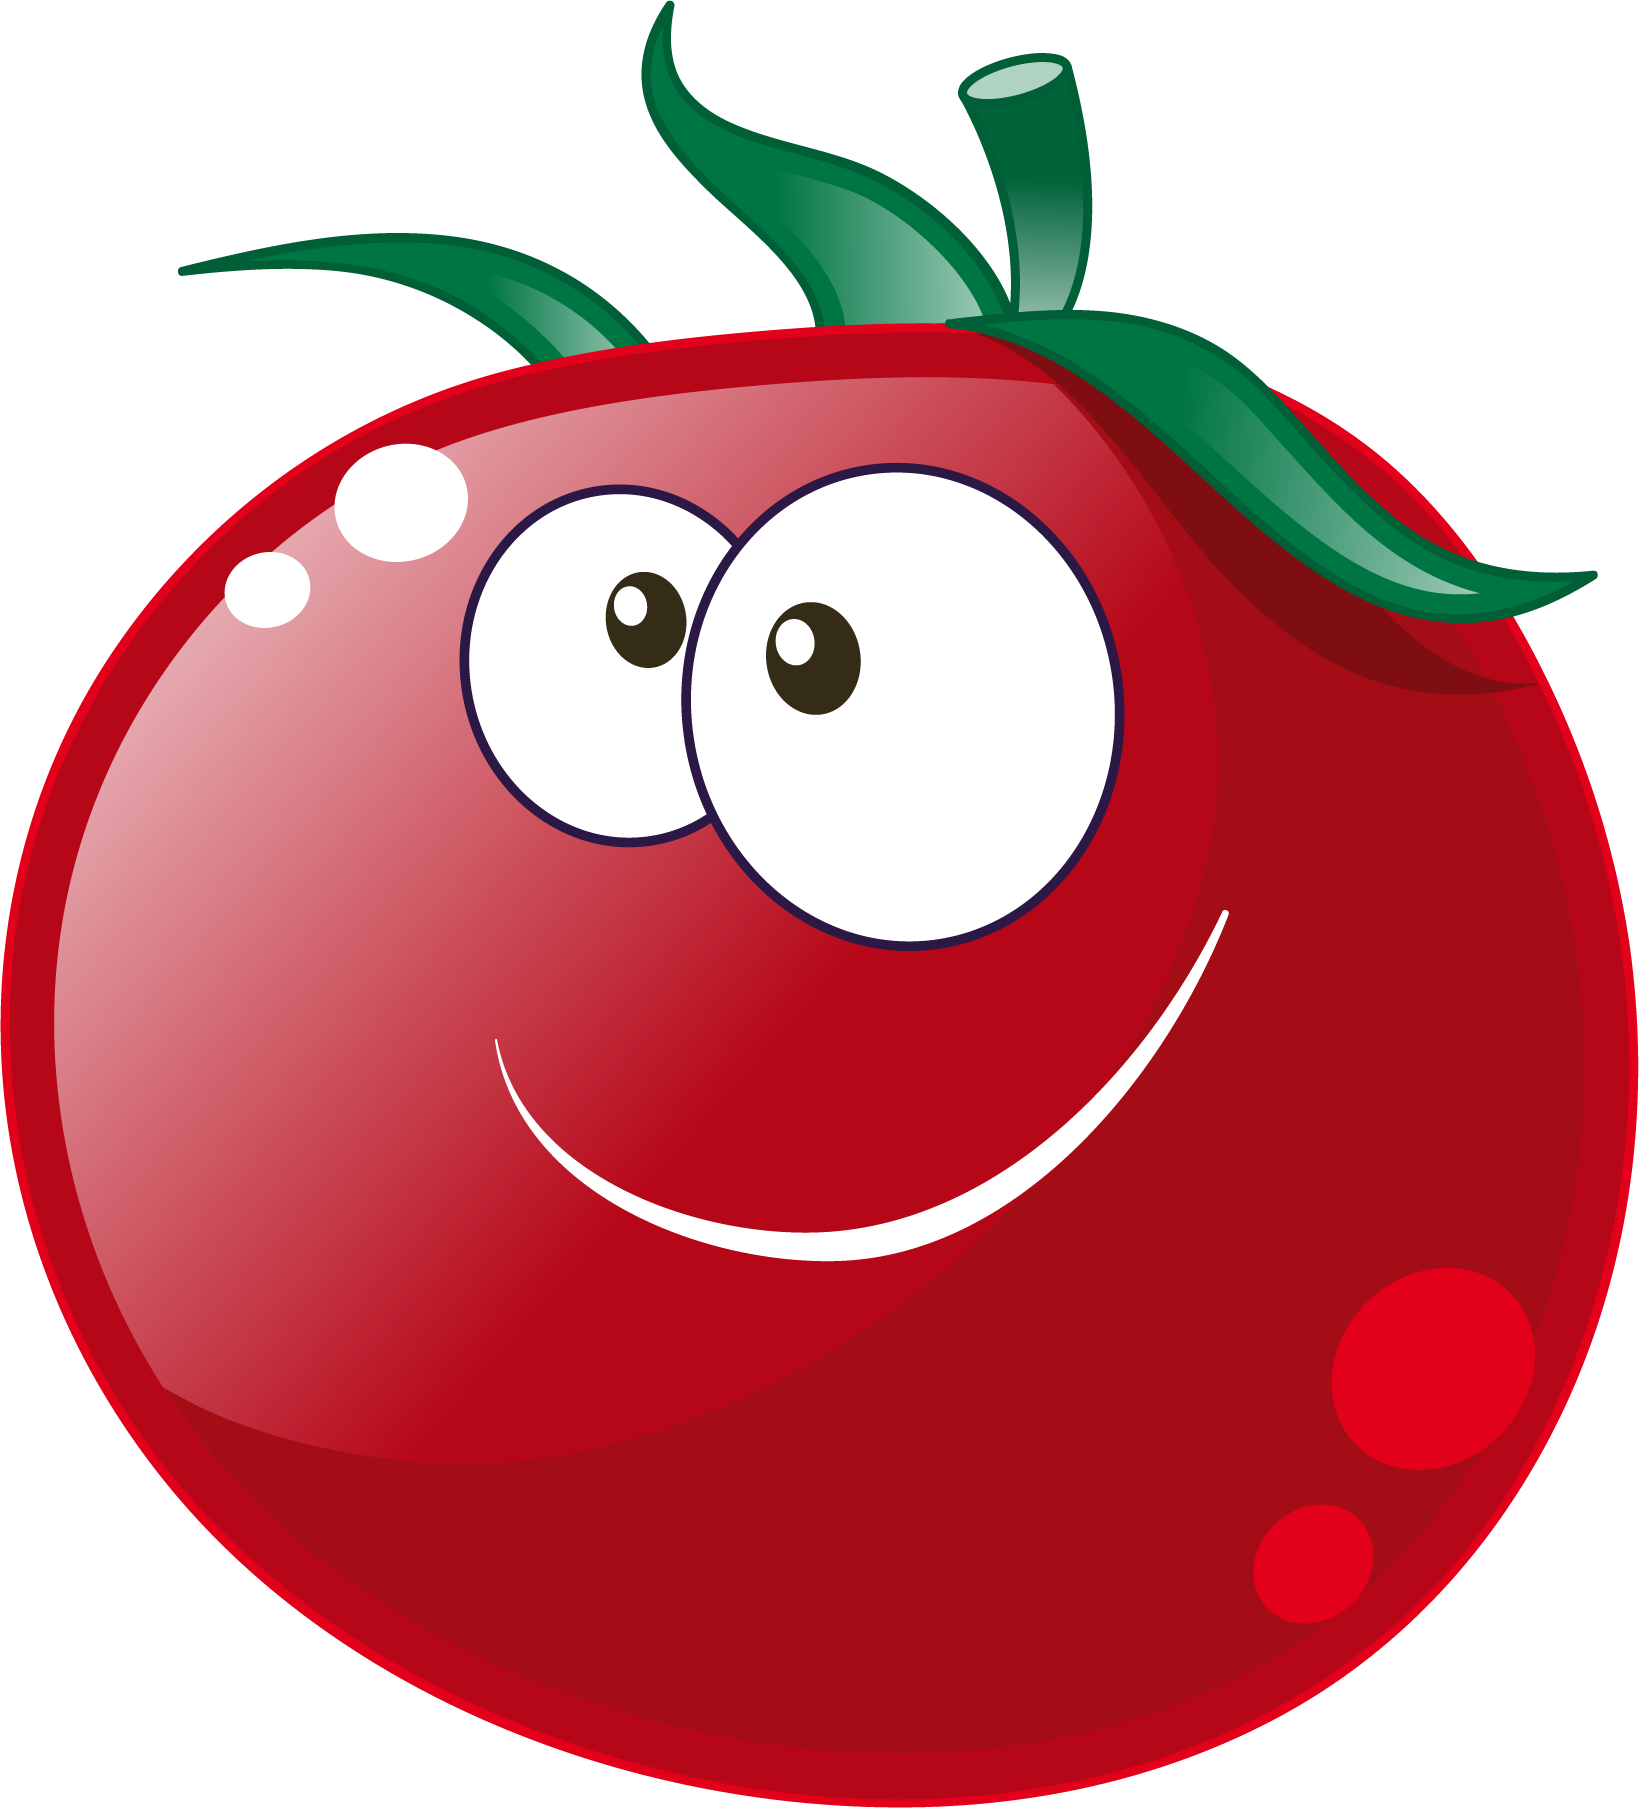 Tomato cartoon png. Images transparent photos only